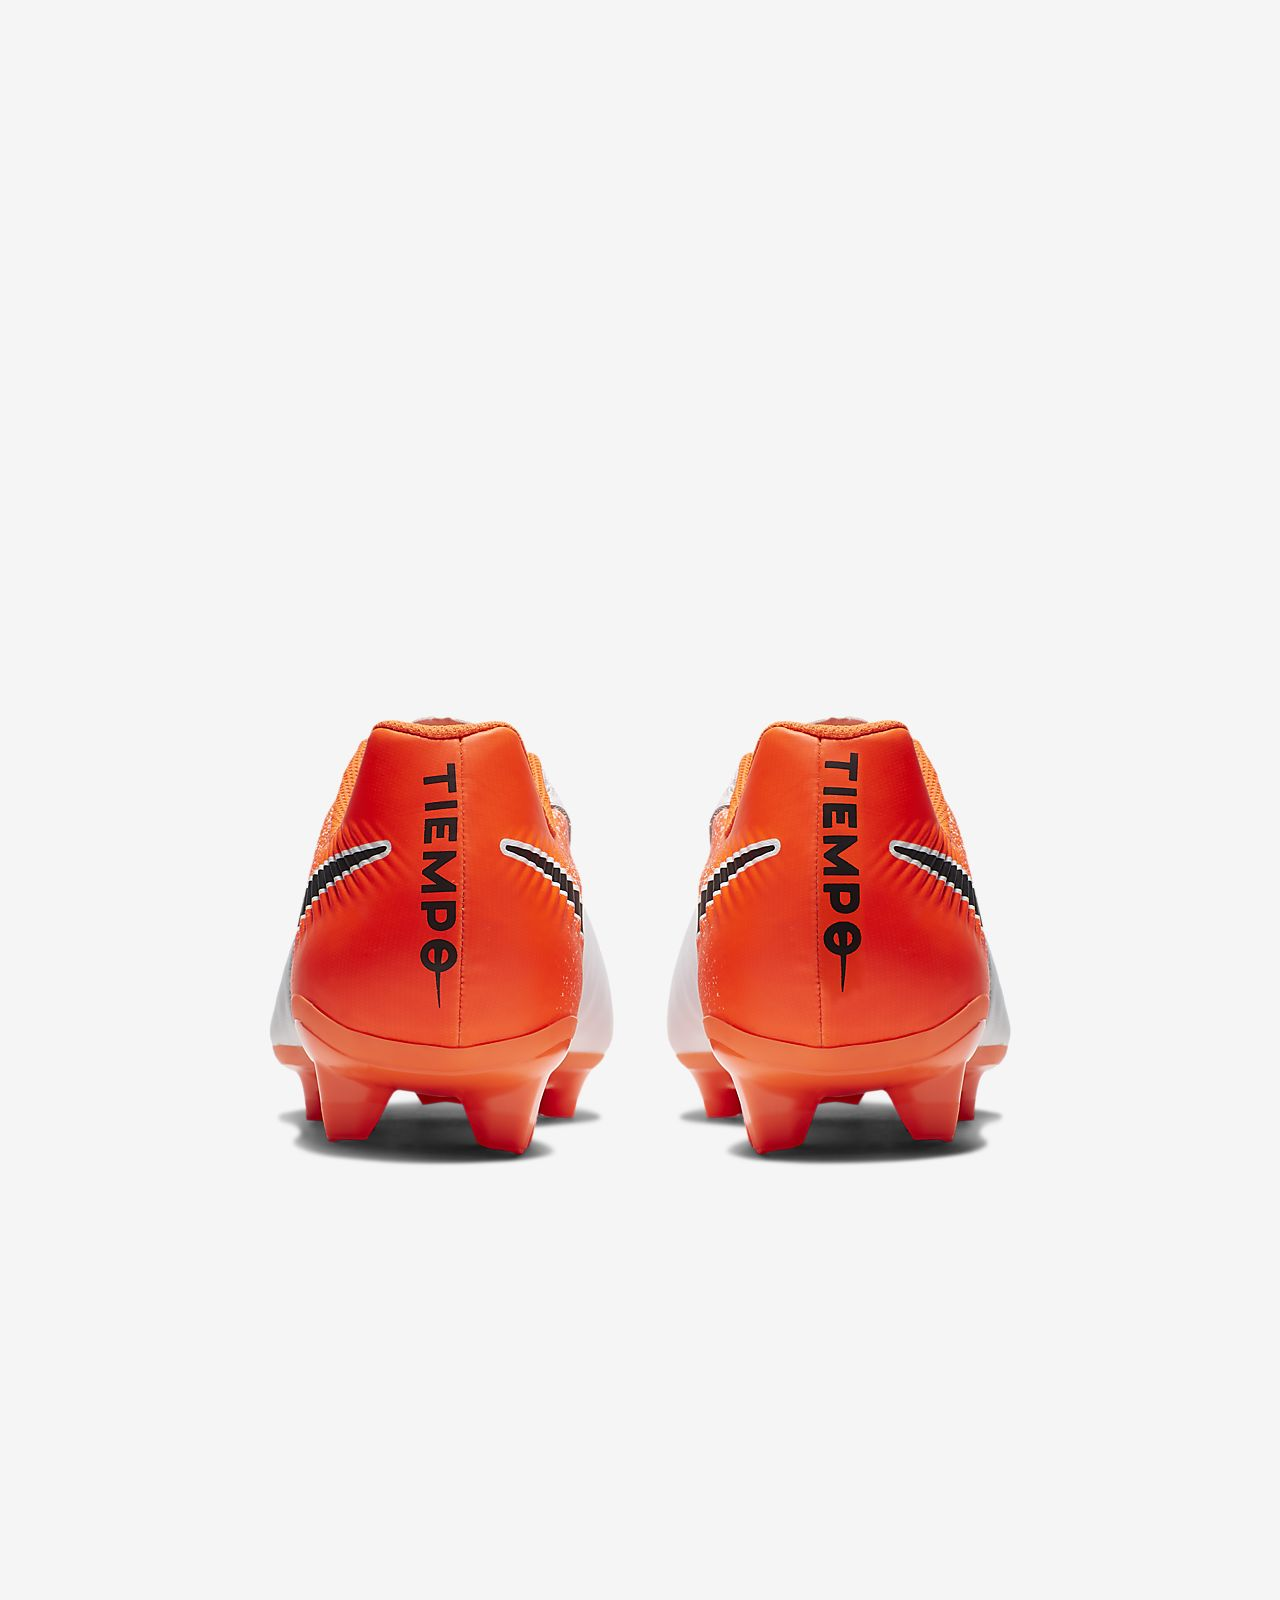 new arrival 798eb b5386 ... Nike Tiempo Legend VII Academy Firm-Ground Football Boot